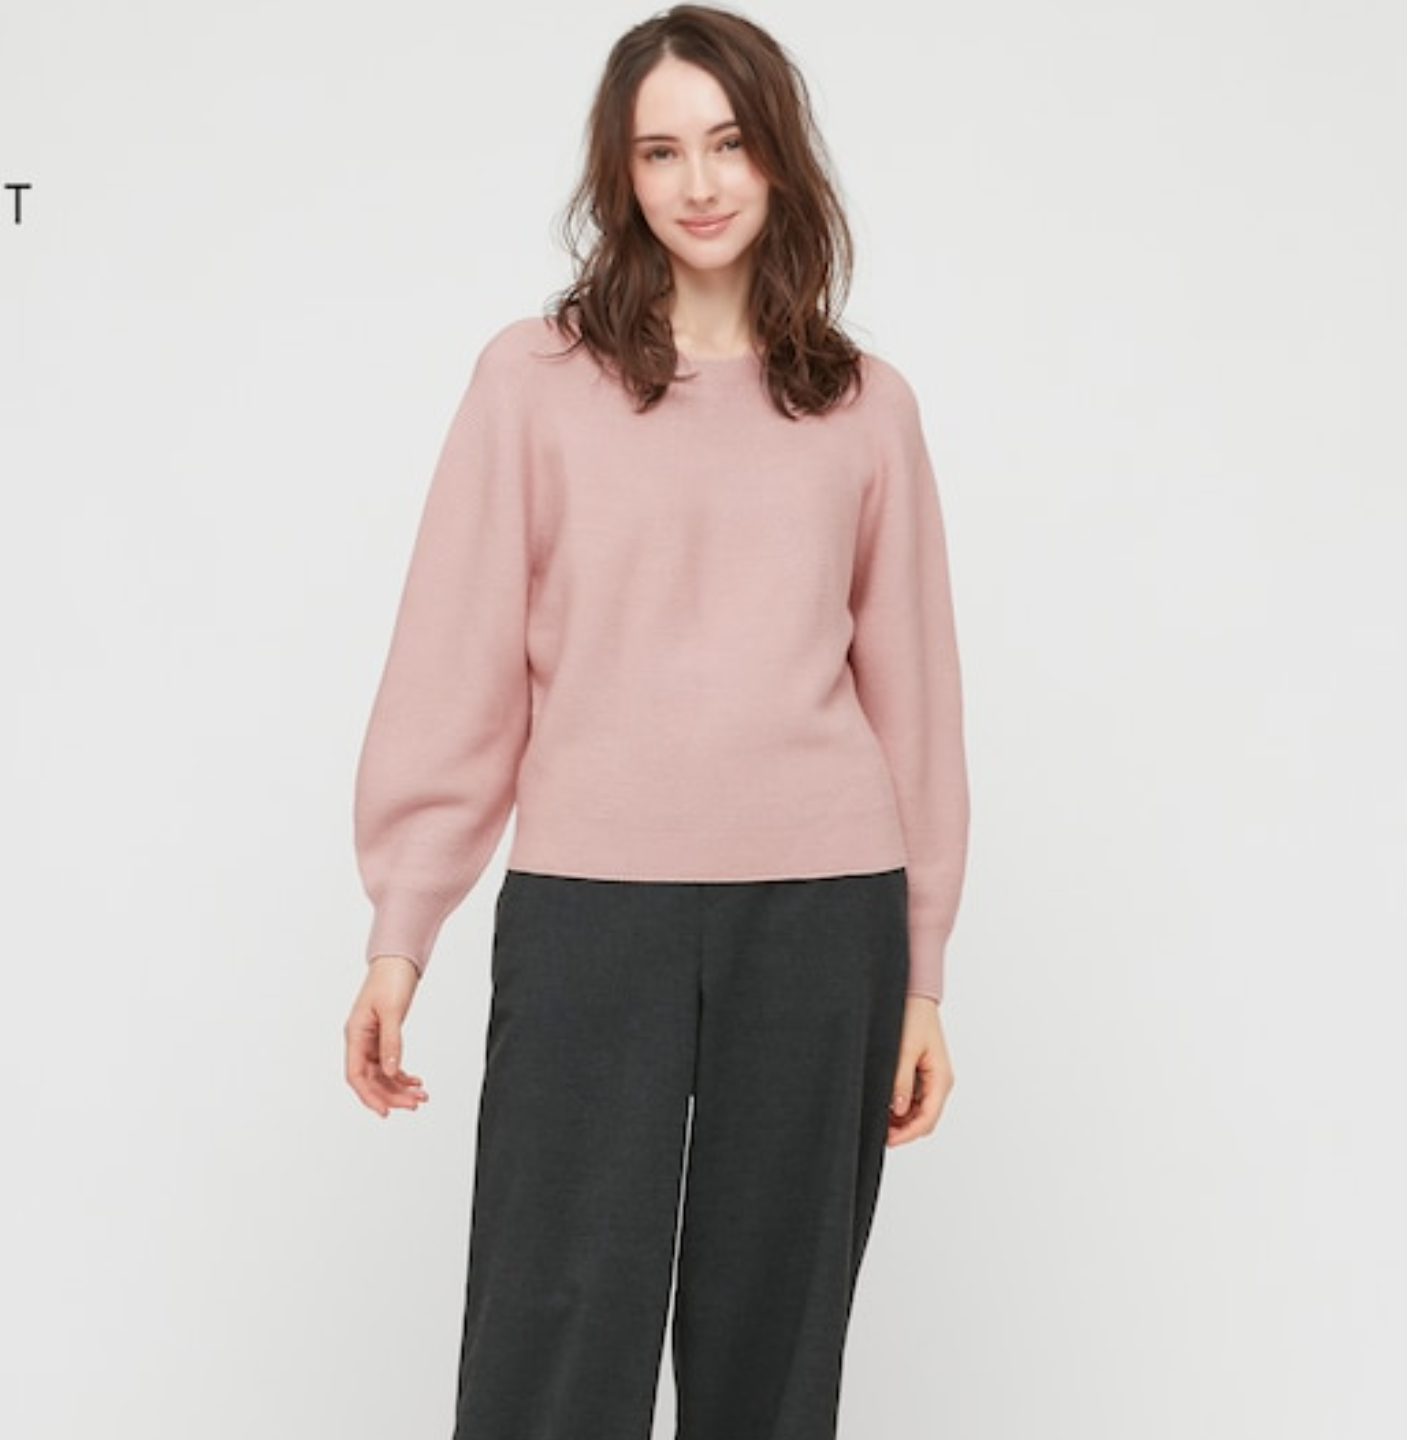 UNIQLO Spring Sale from $7.9